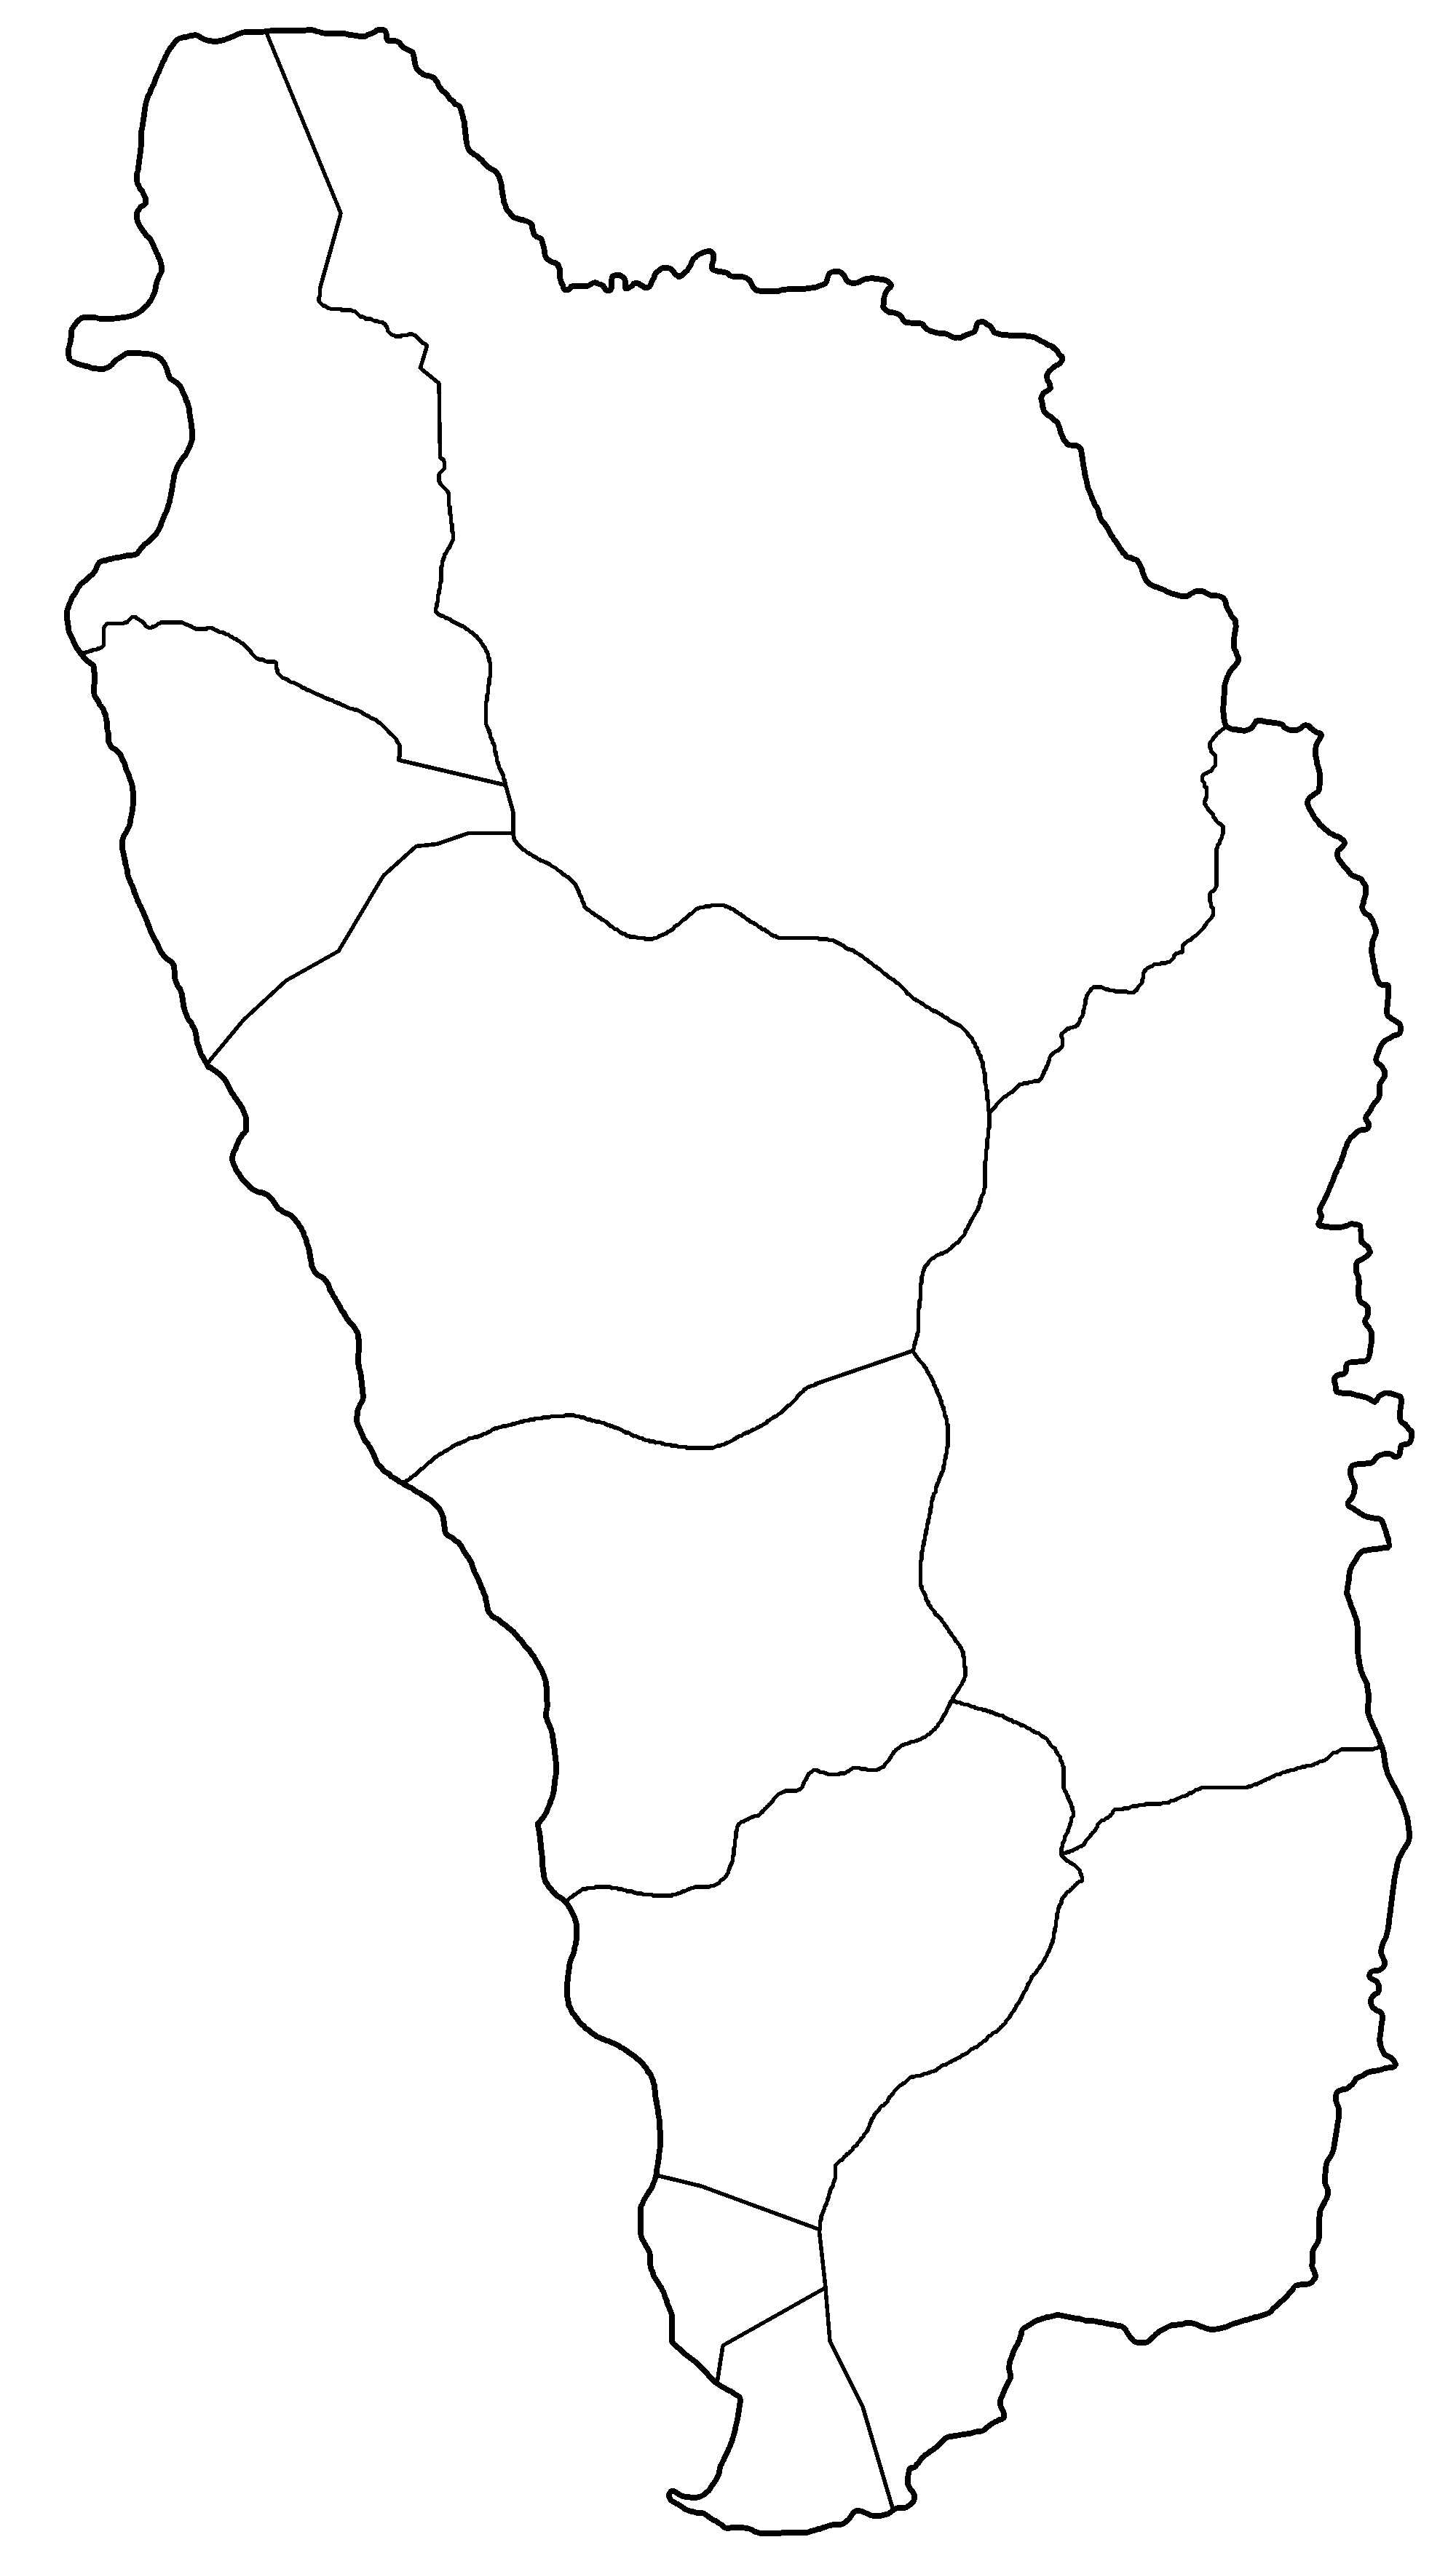 FileDominica Parishes Blankpng Wikimedia Commons - Dominica map hd pdf